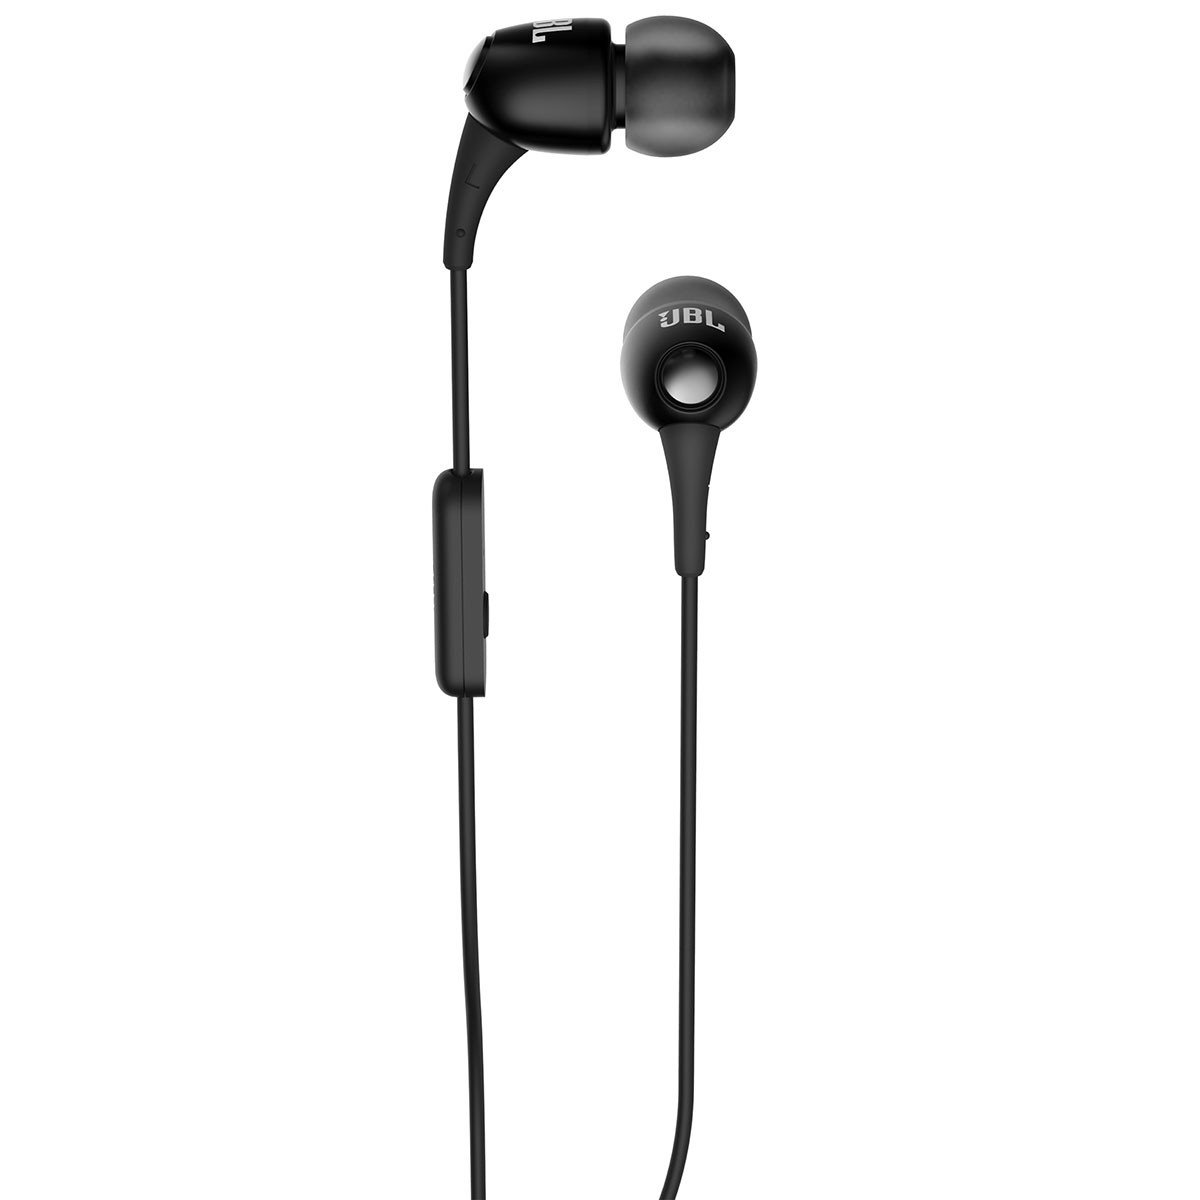 Earphones with microphone jbl - headphones with microphone amazon